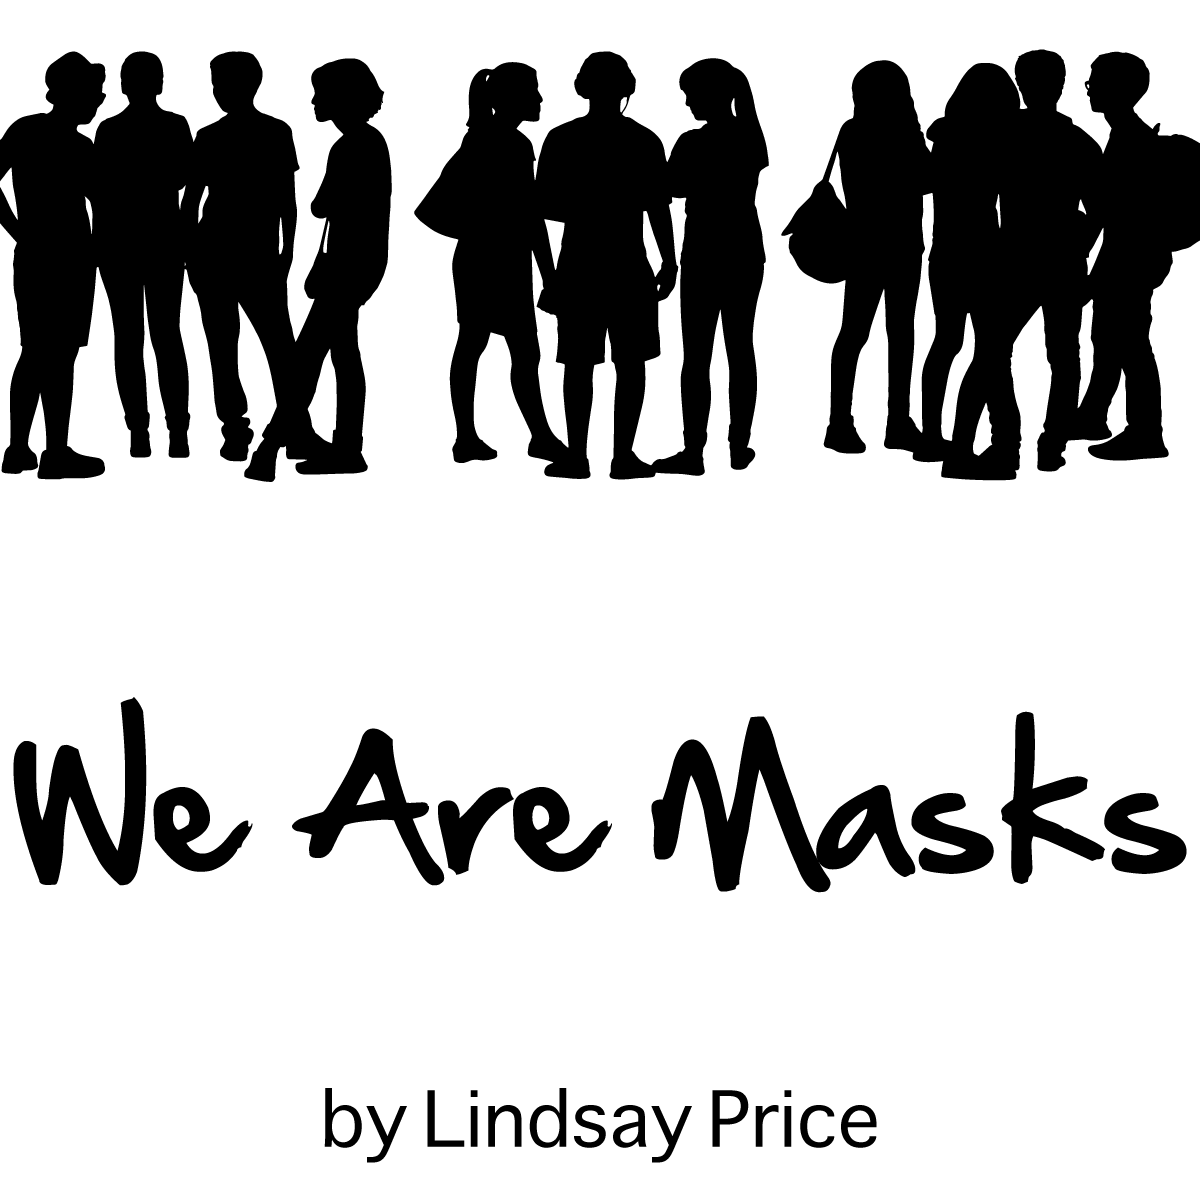 We are Masks